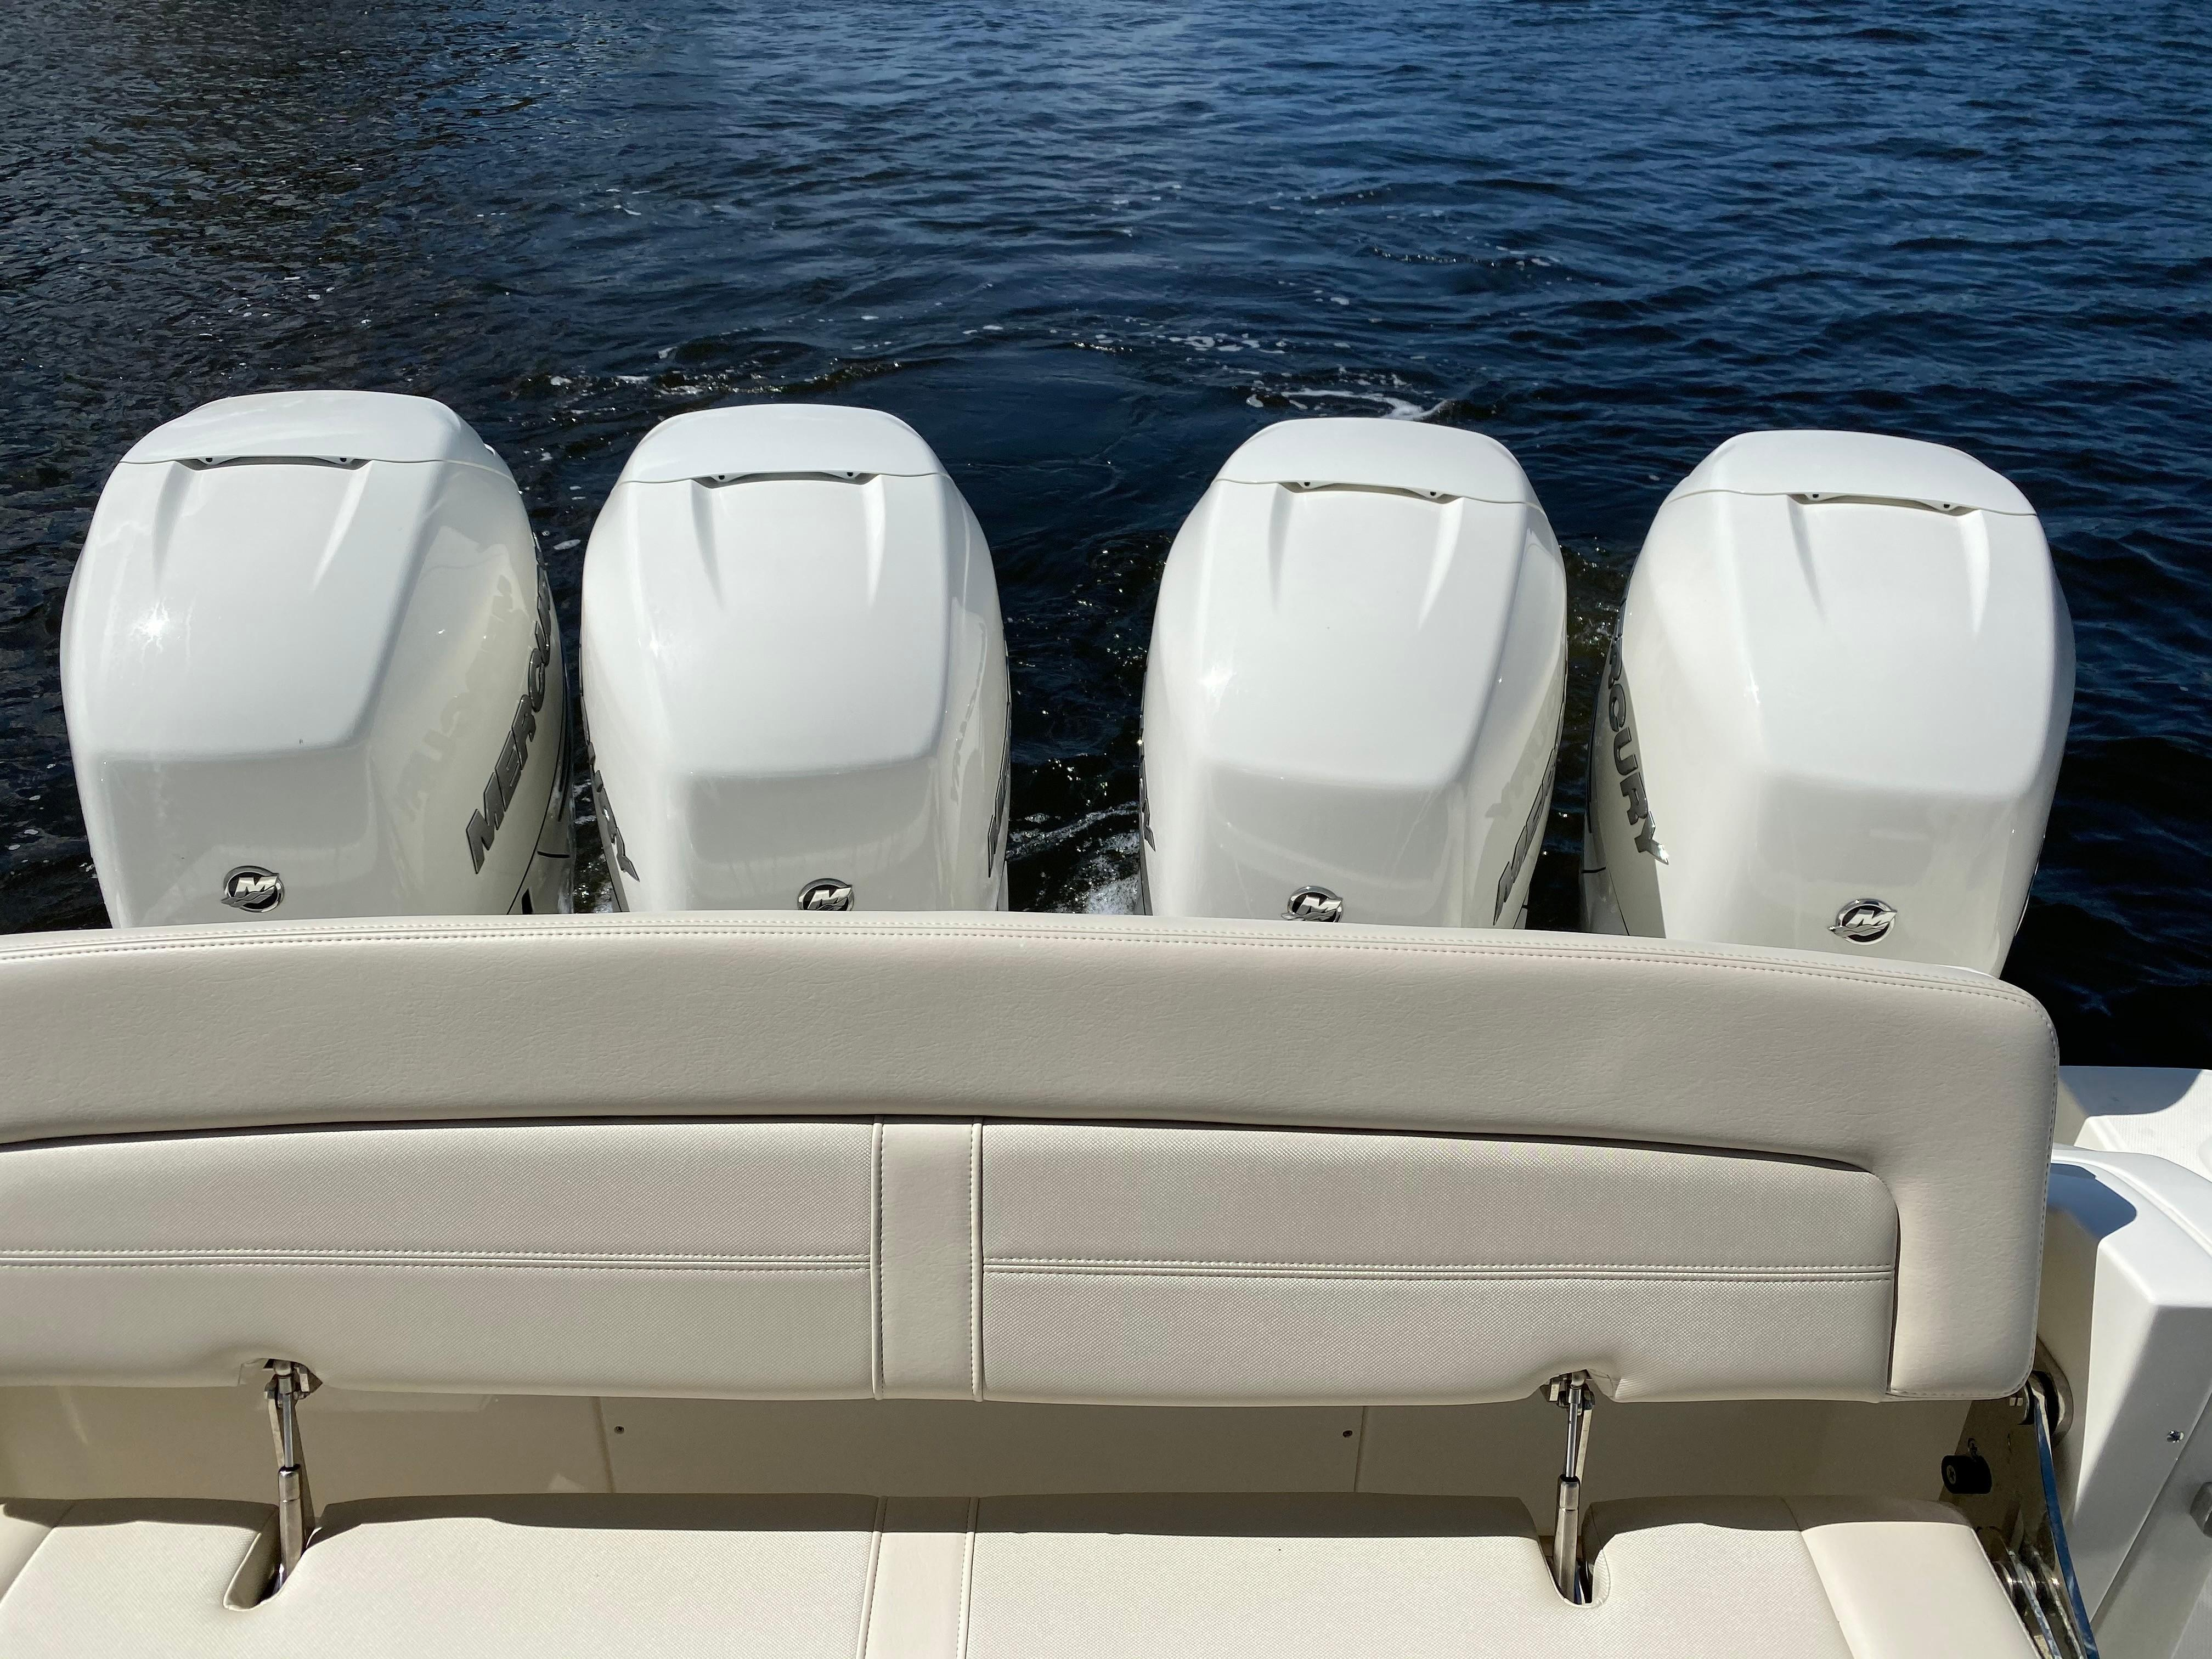 2020 Boston Whaler                                                              380 Realm Image Thumbnail #8